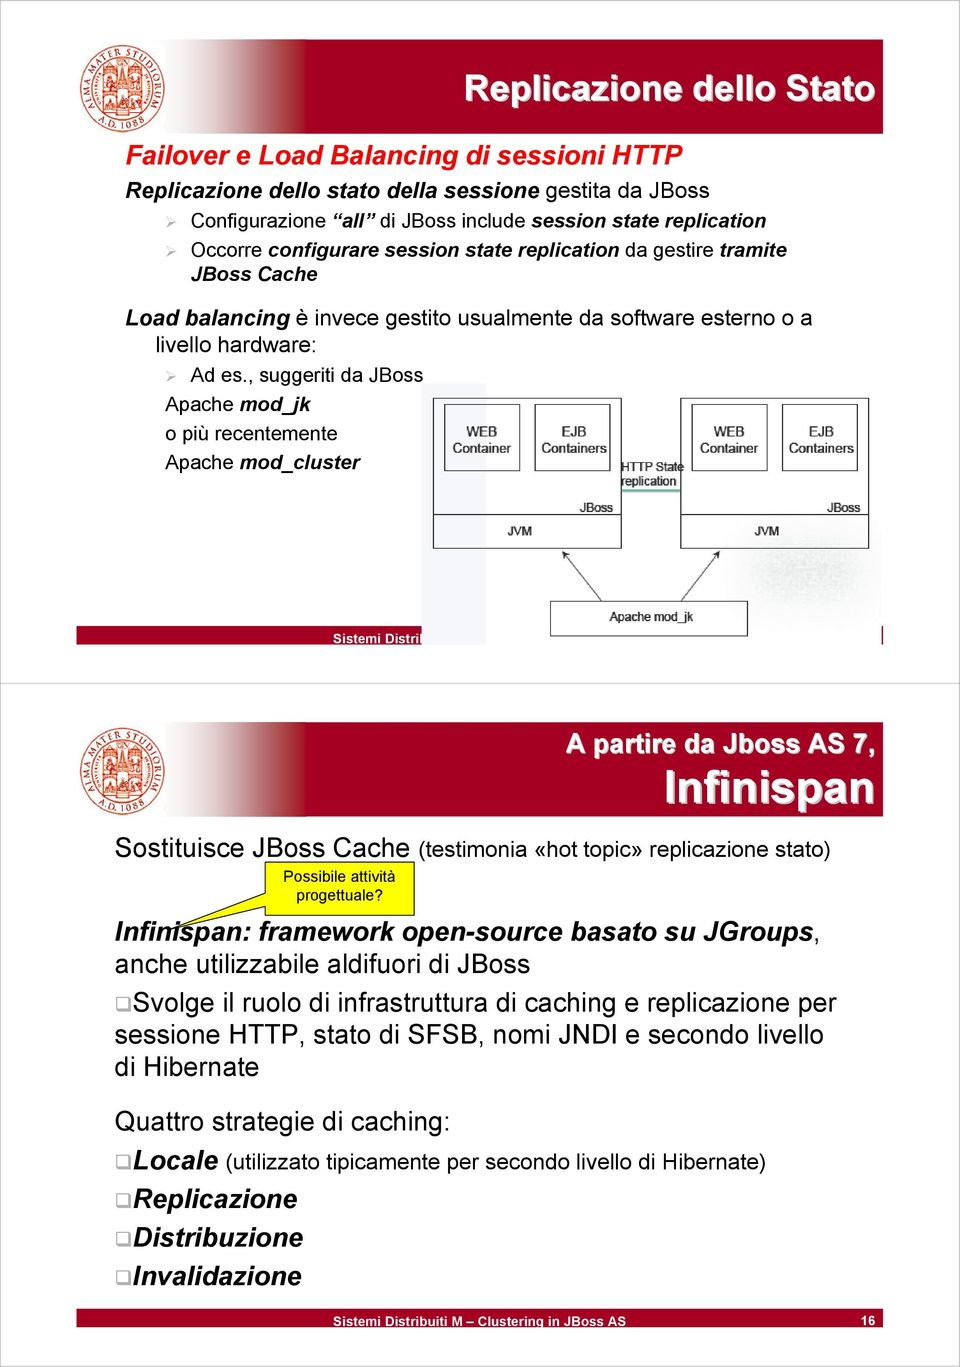 , suggeriti da JBoss Apache mod_jk o più recentemente Apache mod_cluster Sistemi Distribuiti M Clustering in JBoss AS 15 A partire da Jboss AS 7, Infinispan Sostituisce JBoss Cache (testimonia «hot